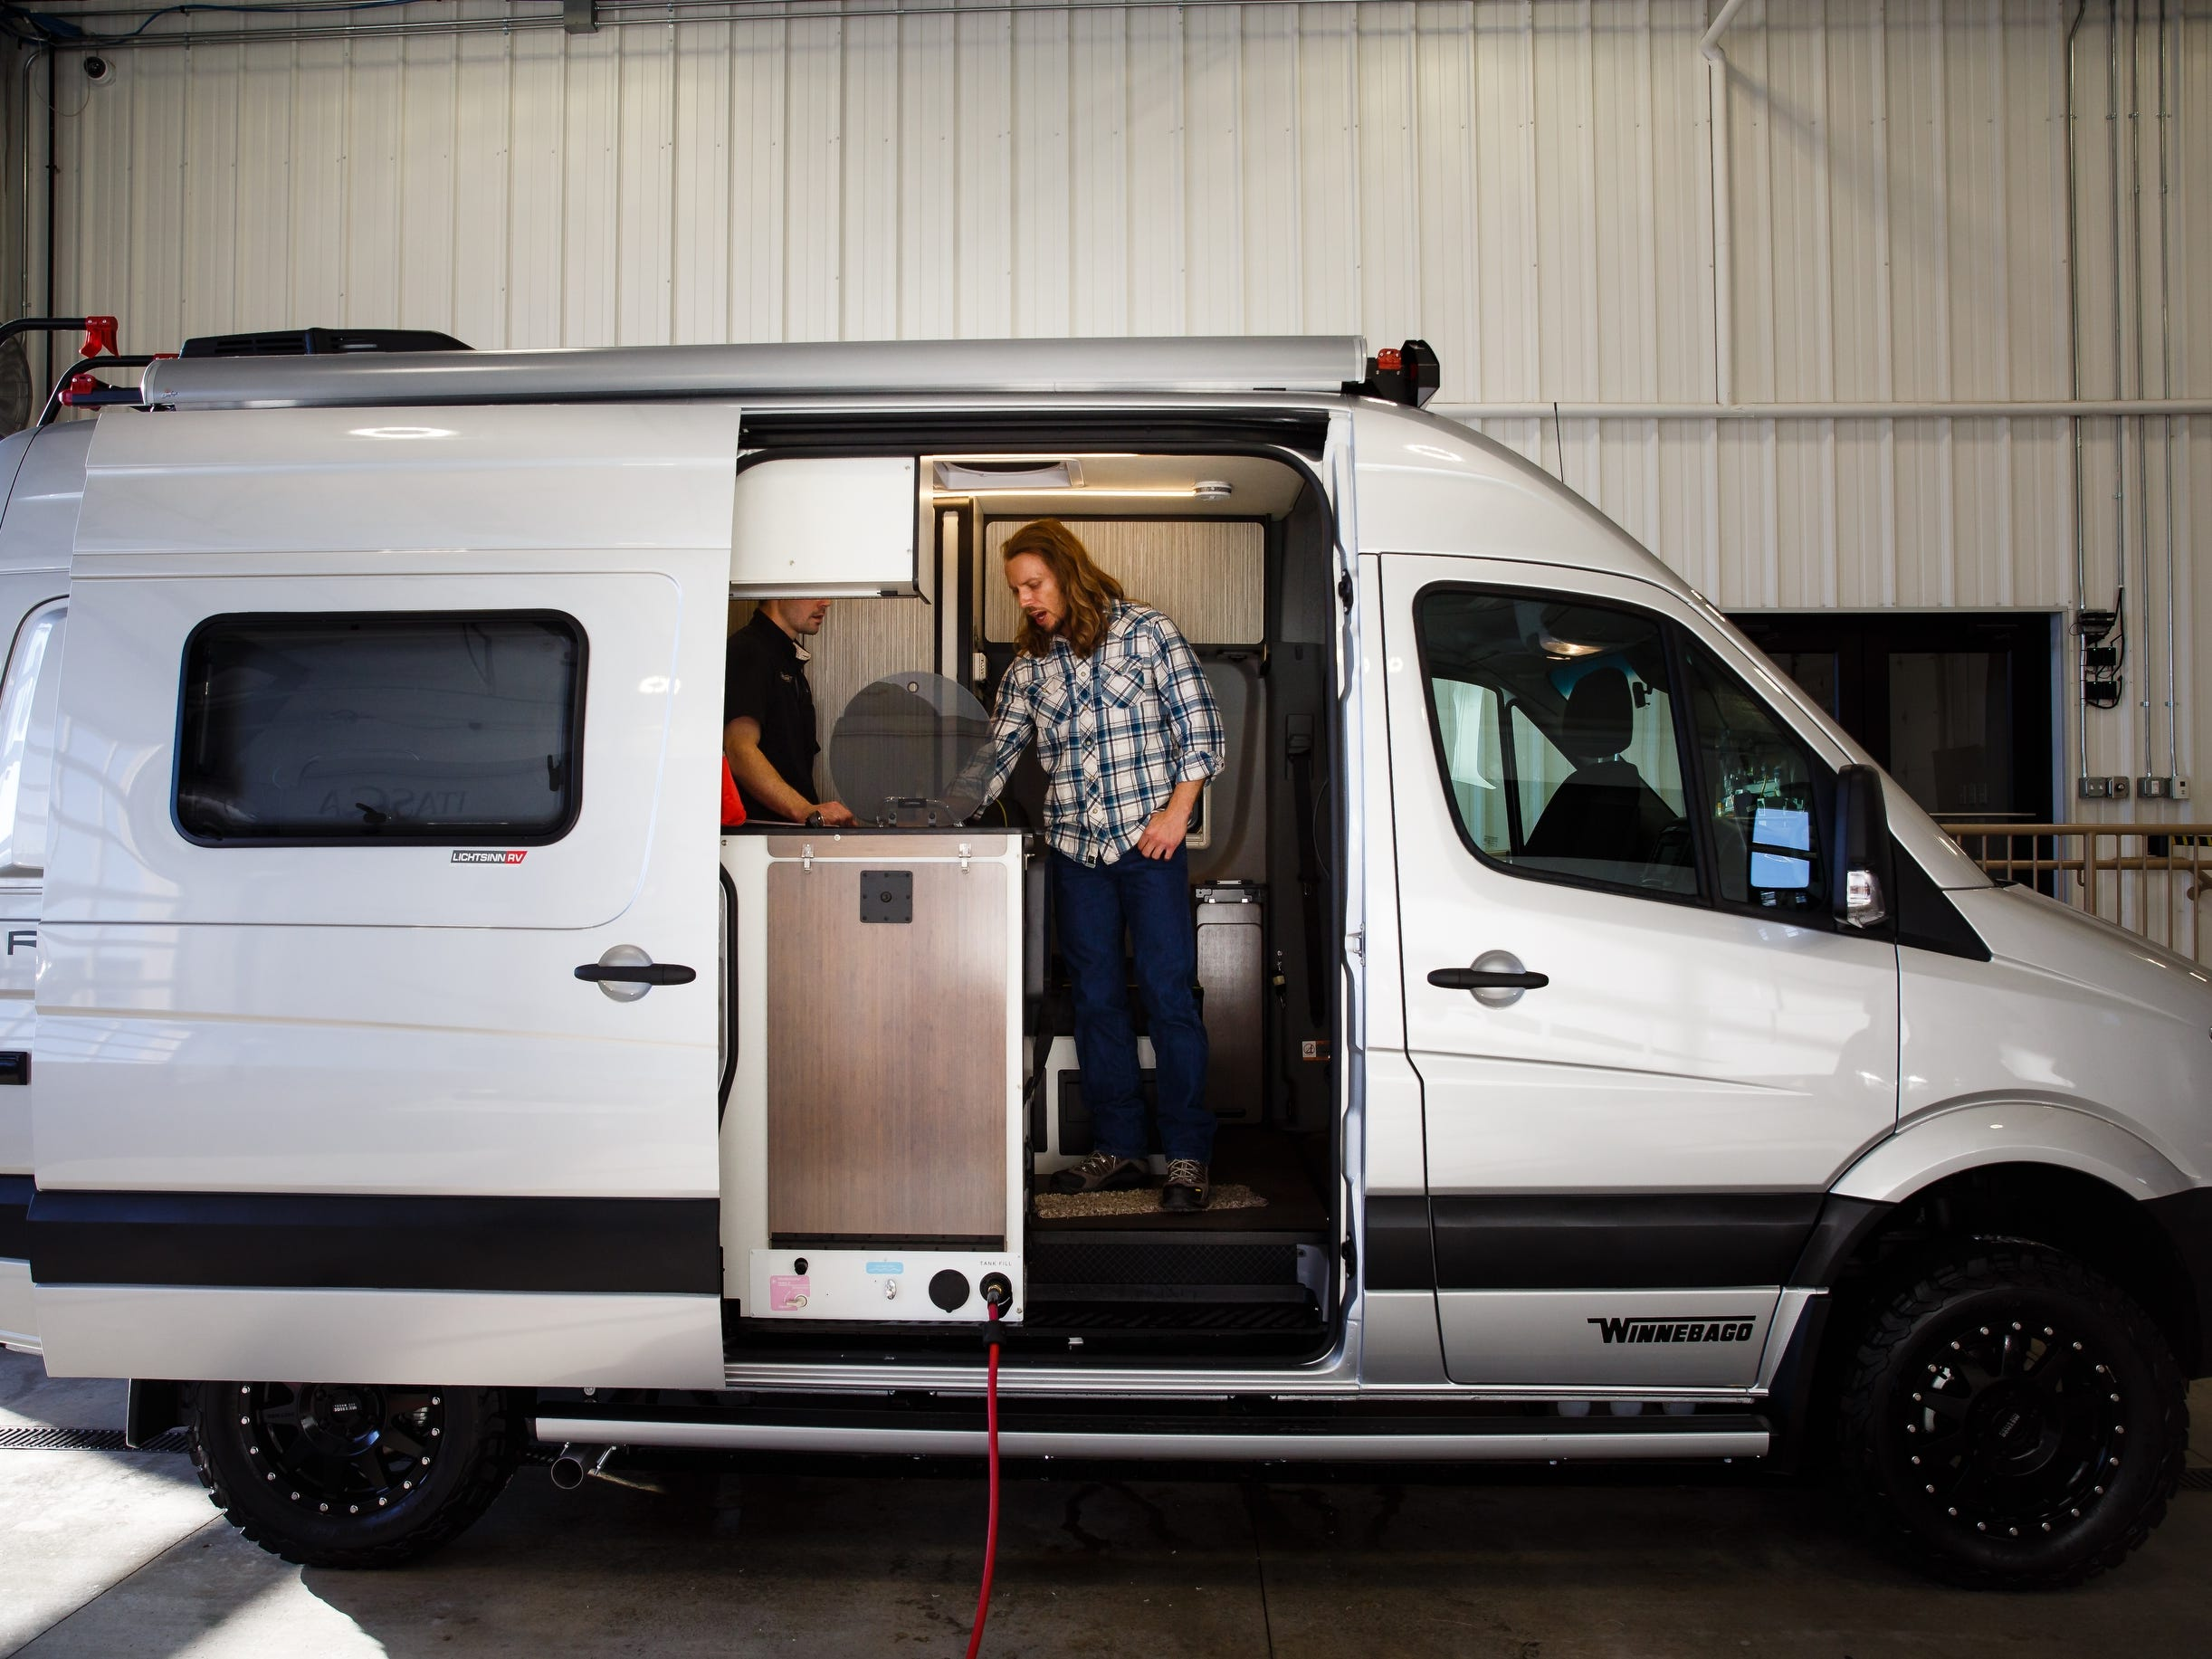 Dustin James Leighton gets a tour of his new Winnebago Revel at Lichtsinn RV on Wednesday, Dec. 5, 2018, in Forest City. Leighton, a voice-over artist, spends a lot of time on the road and said he plans to turn part of the RV into a mobile studio so he can record from the road if he has too.